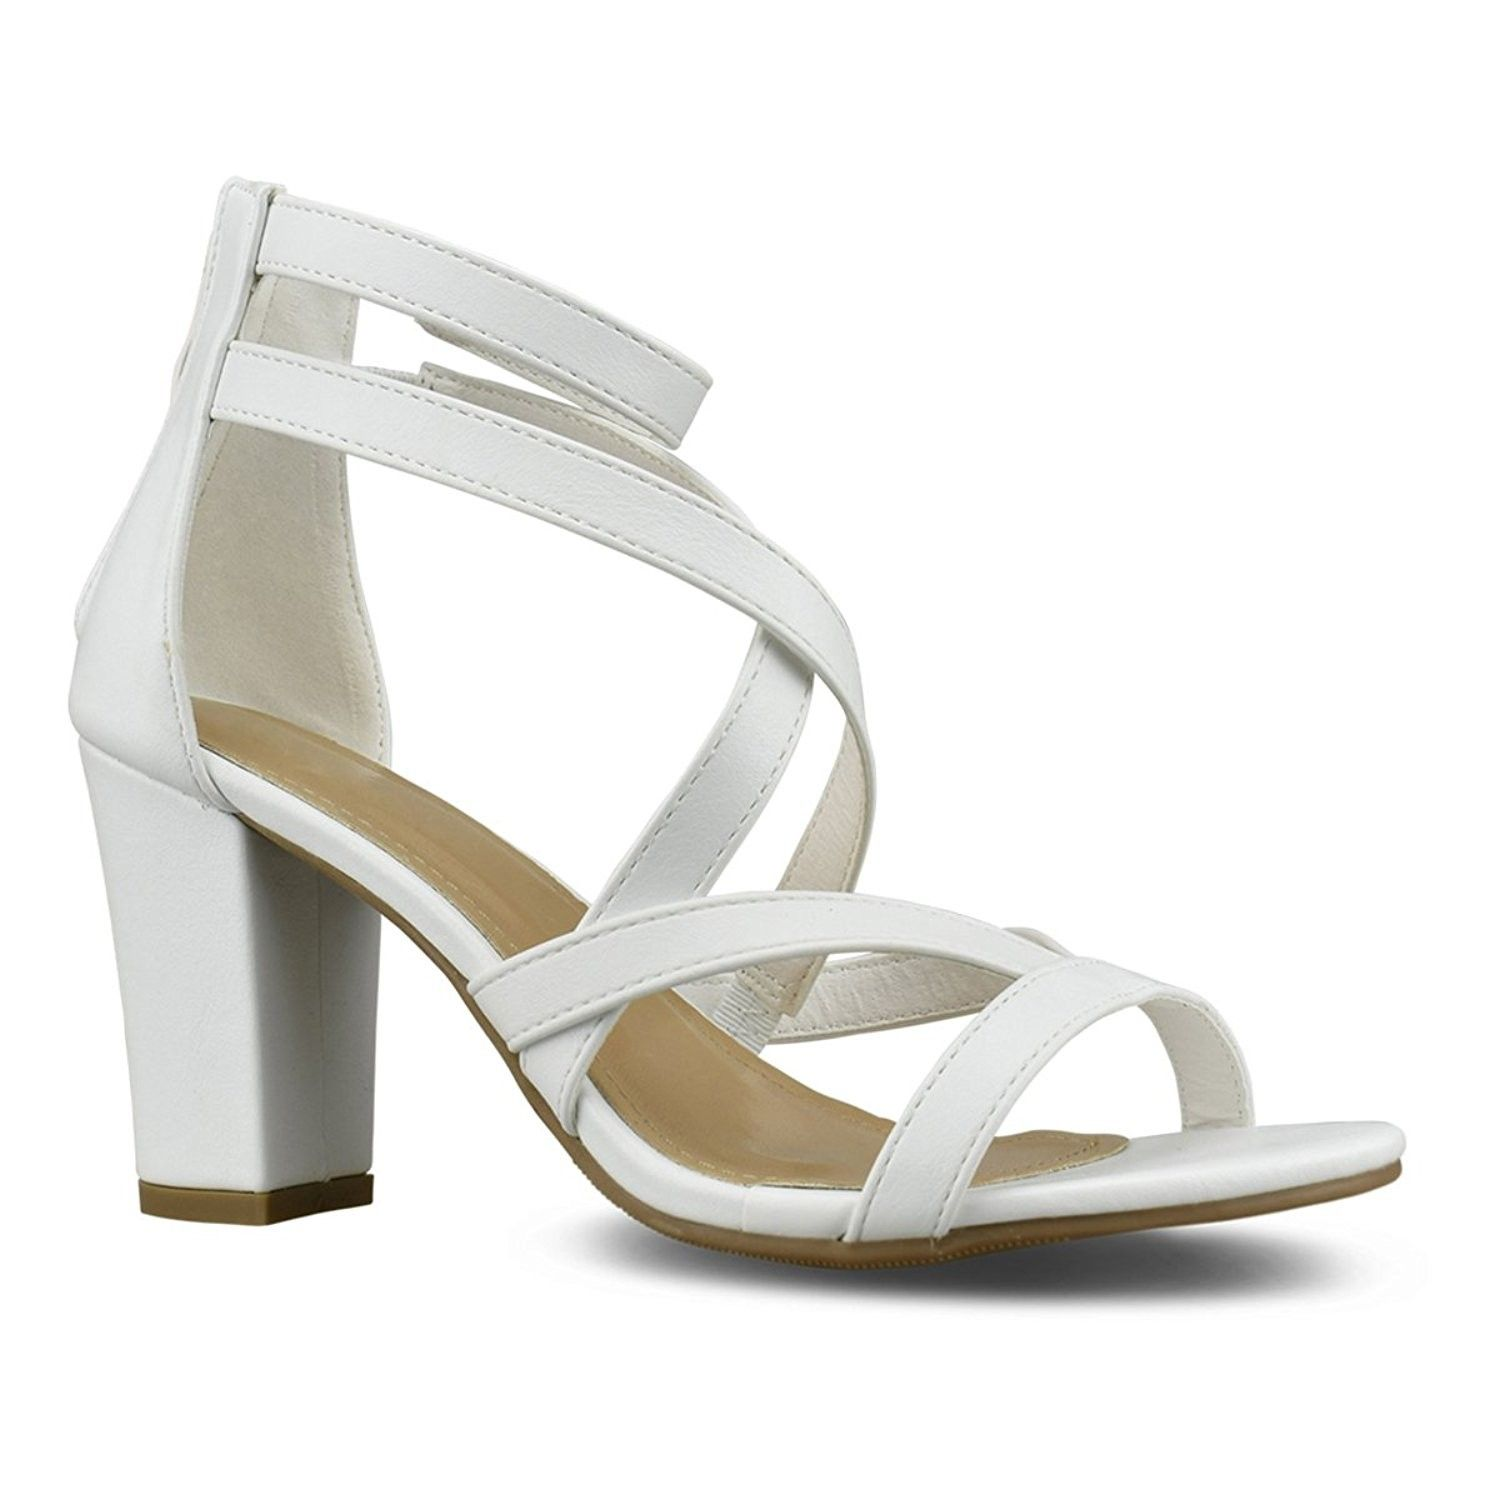 6c83413f08f6 Womens Strappy Open Toe High Chunky Heel - Sexy Stacked Heel Sandal ...